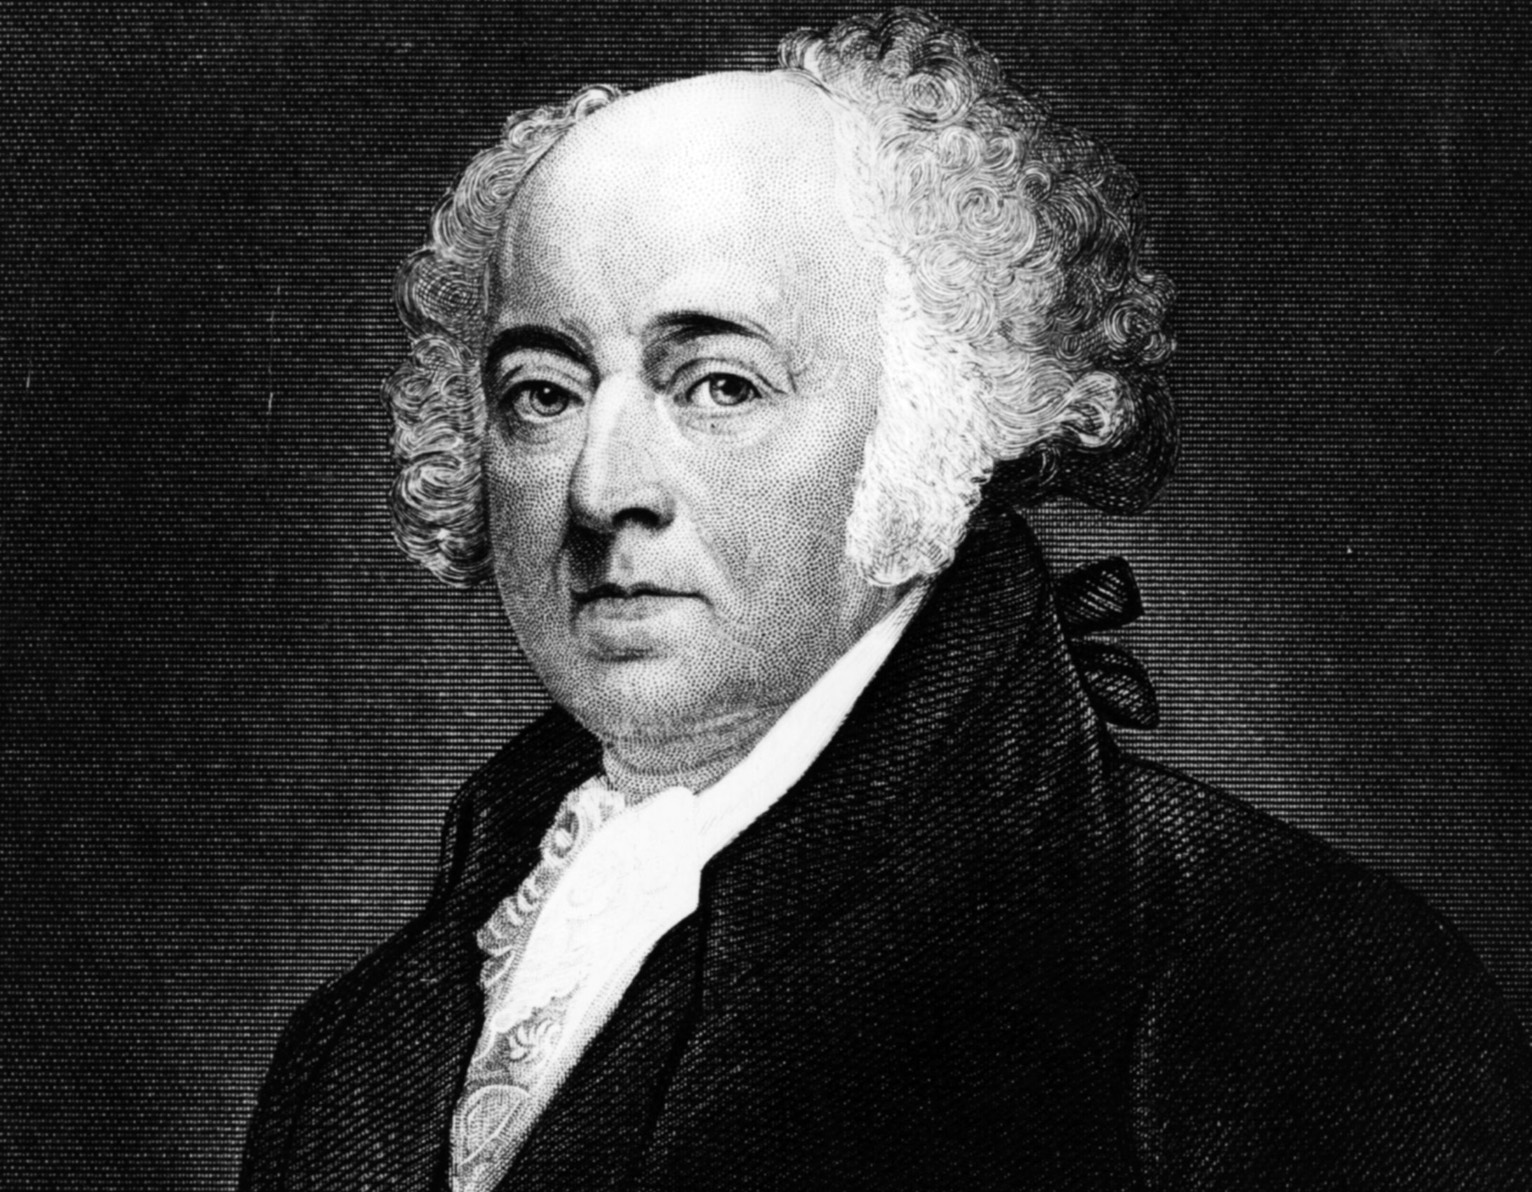 the face of america at the time of george washington john adams and thomas jefferson